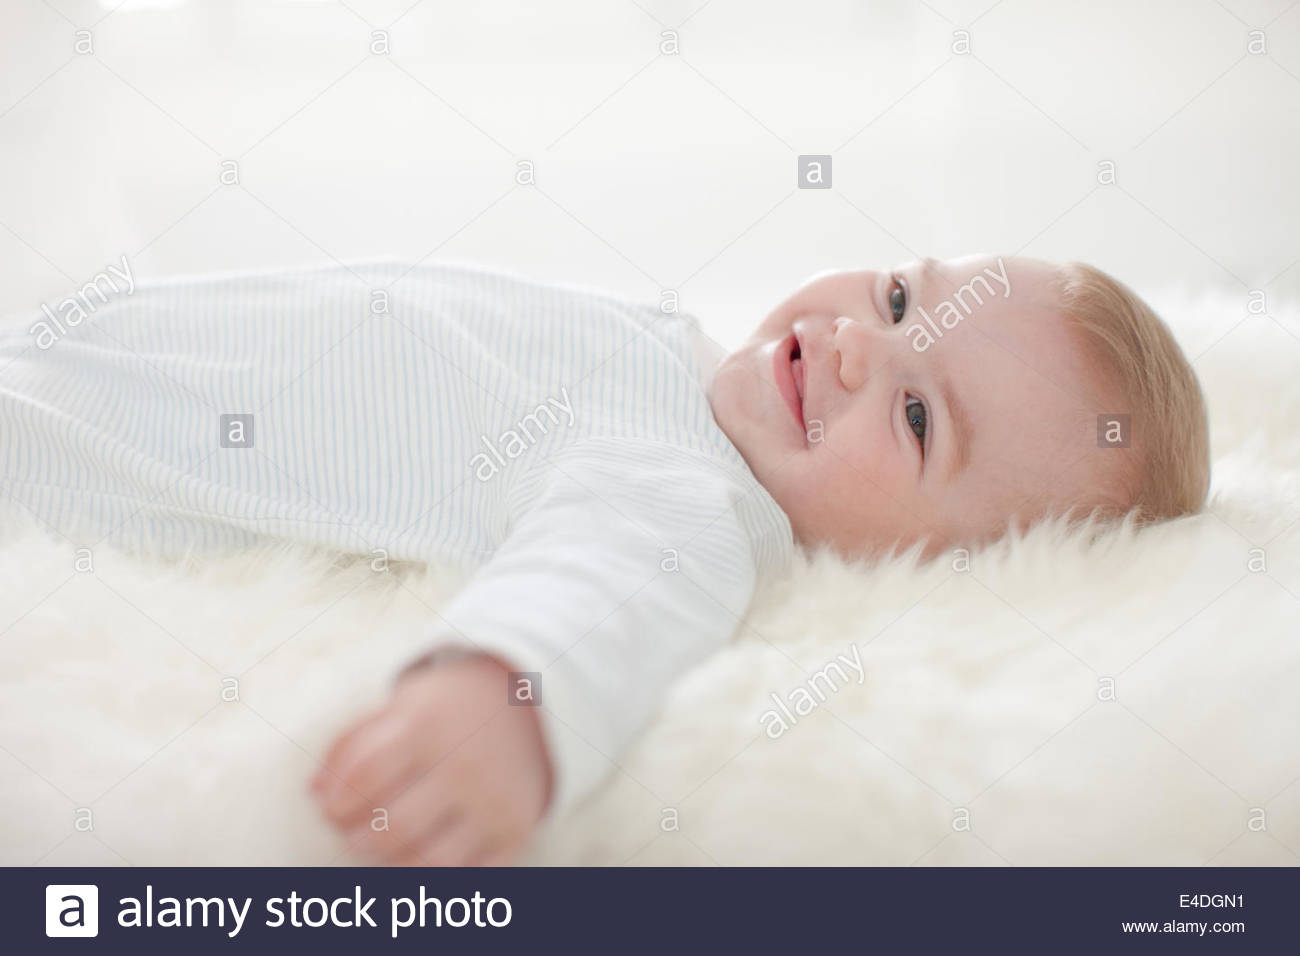 Smiling baby laying on rug - Stock Image